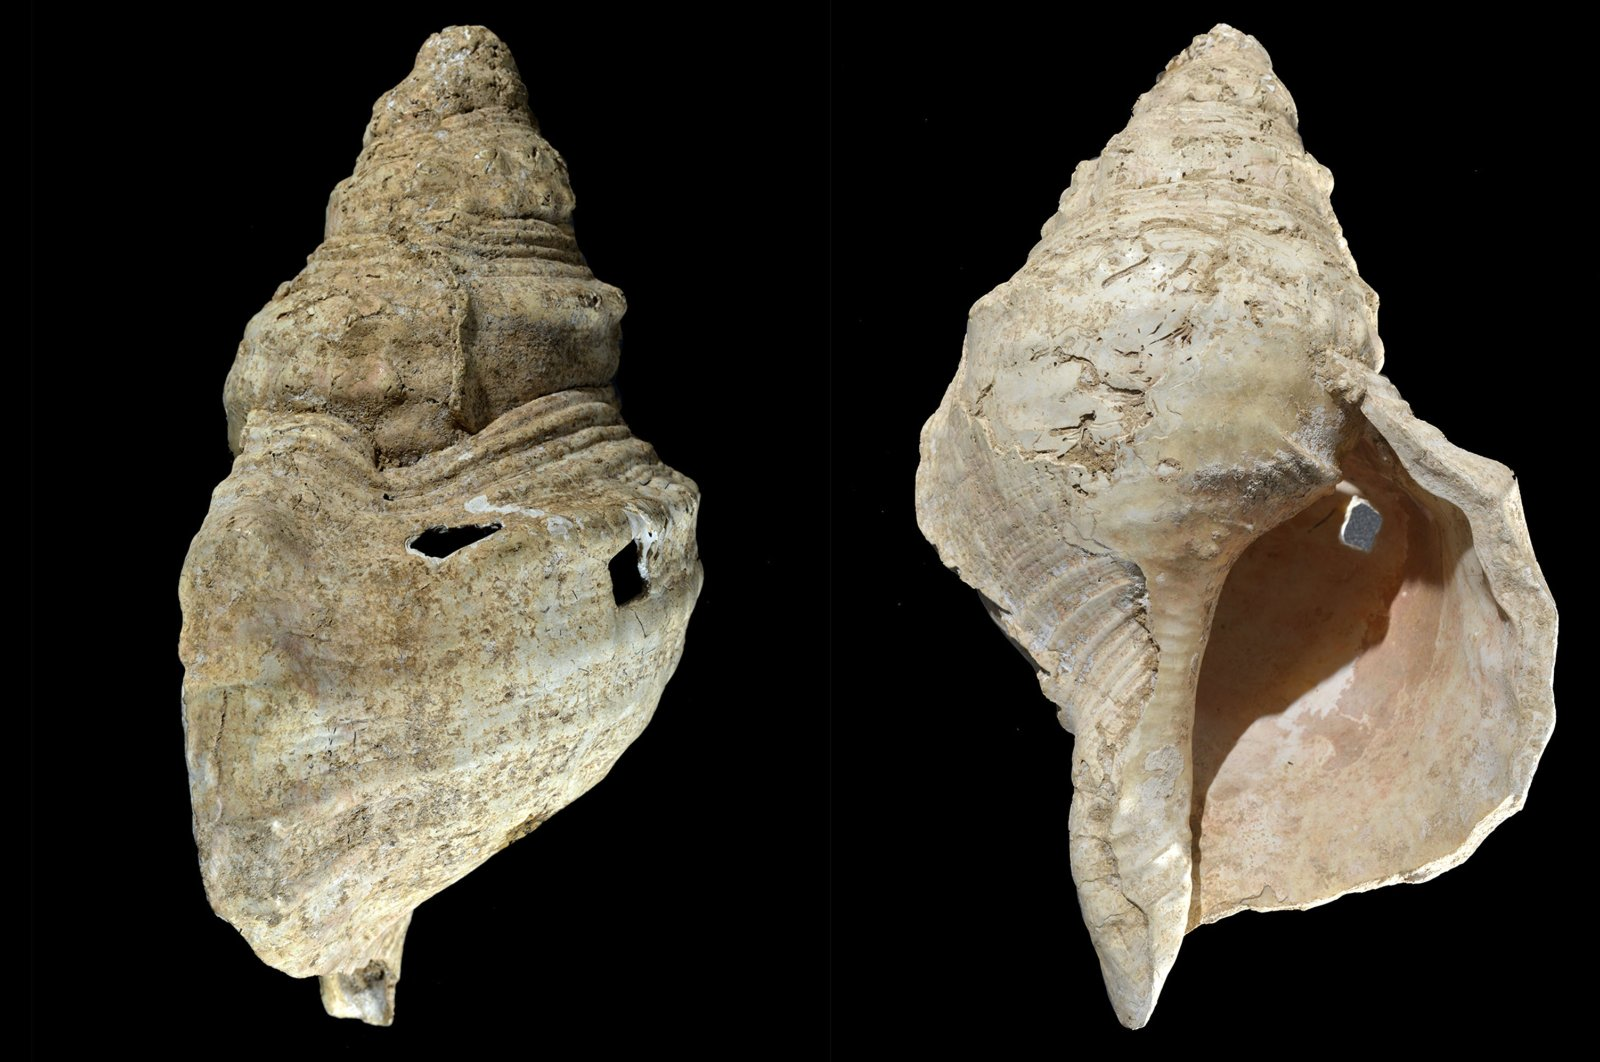 This combination of photos provided by researcher Carole Fritz in February 2021 shows two sides of a 12-inch (31 centimeters) conch shell discovered in a French cave with prehistoric wall paintings in 1931. (AP PHOTO)